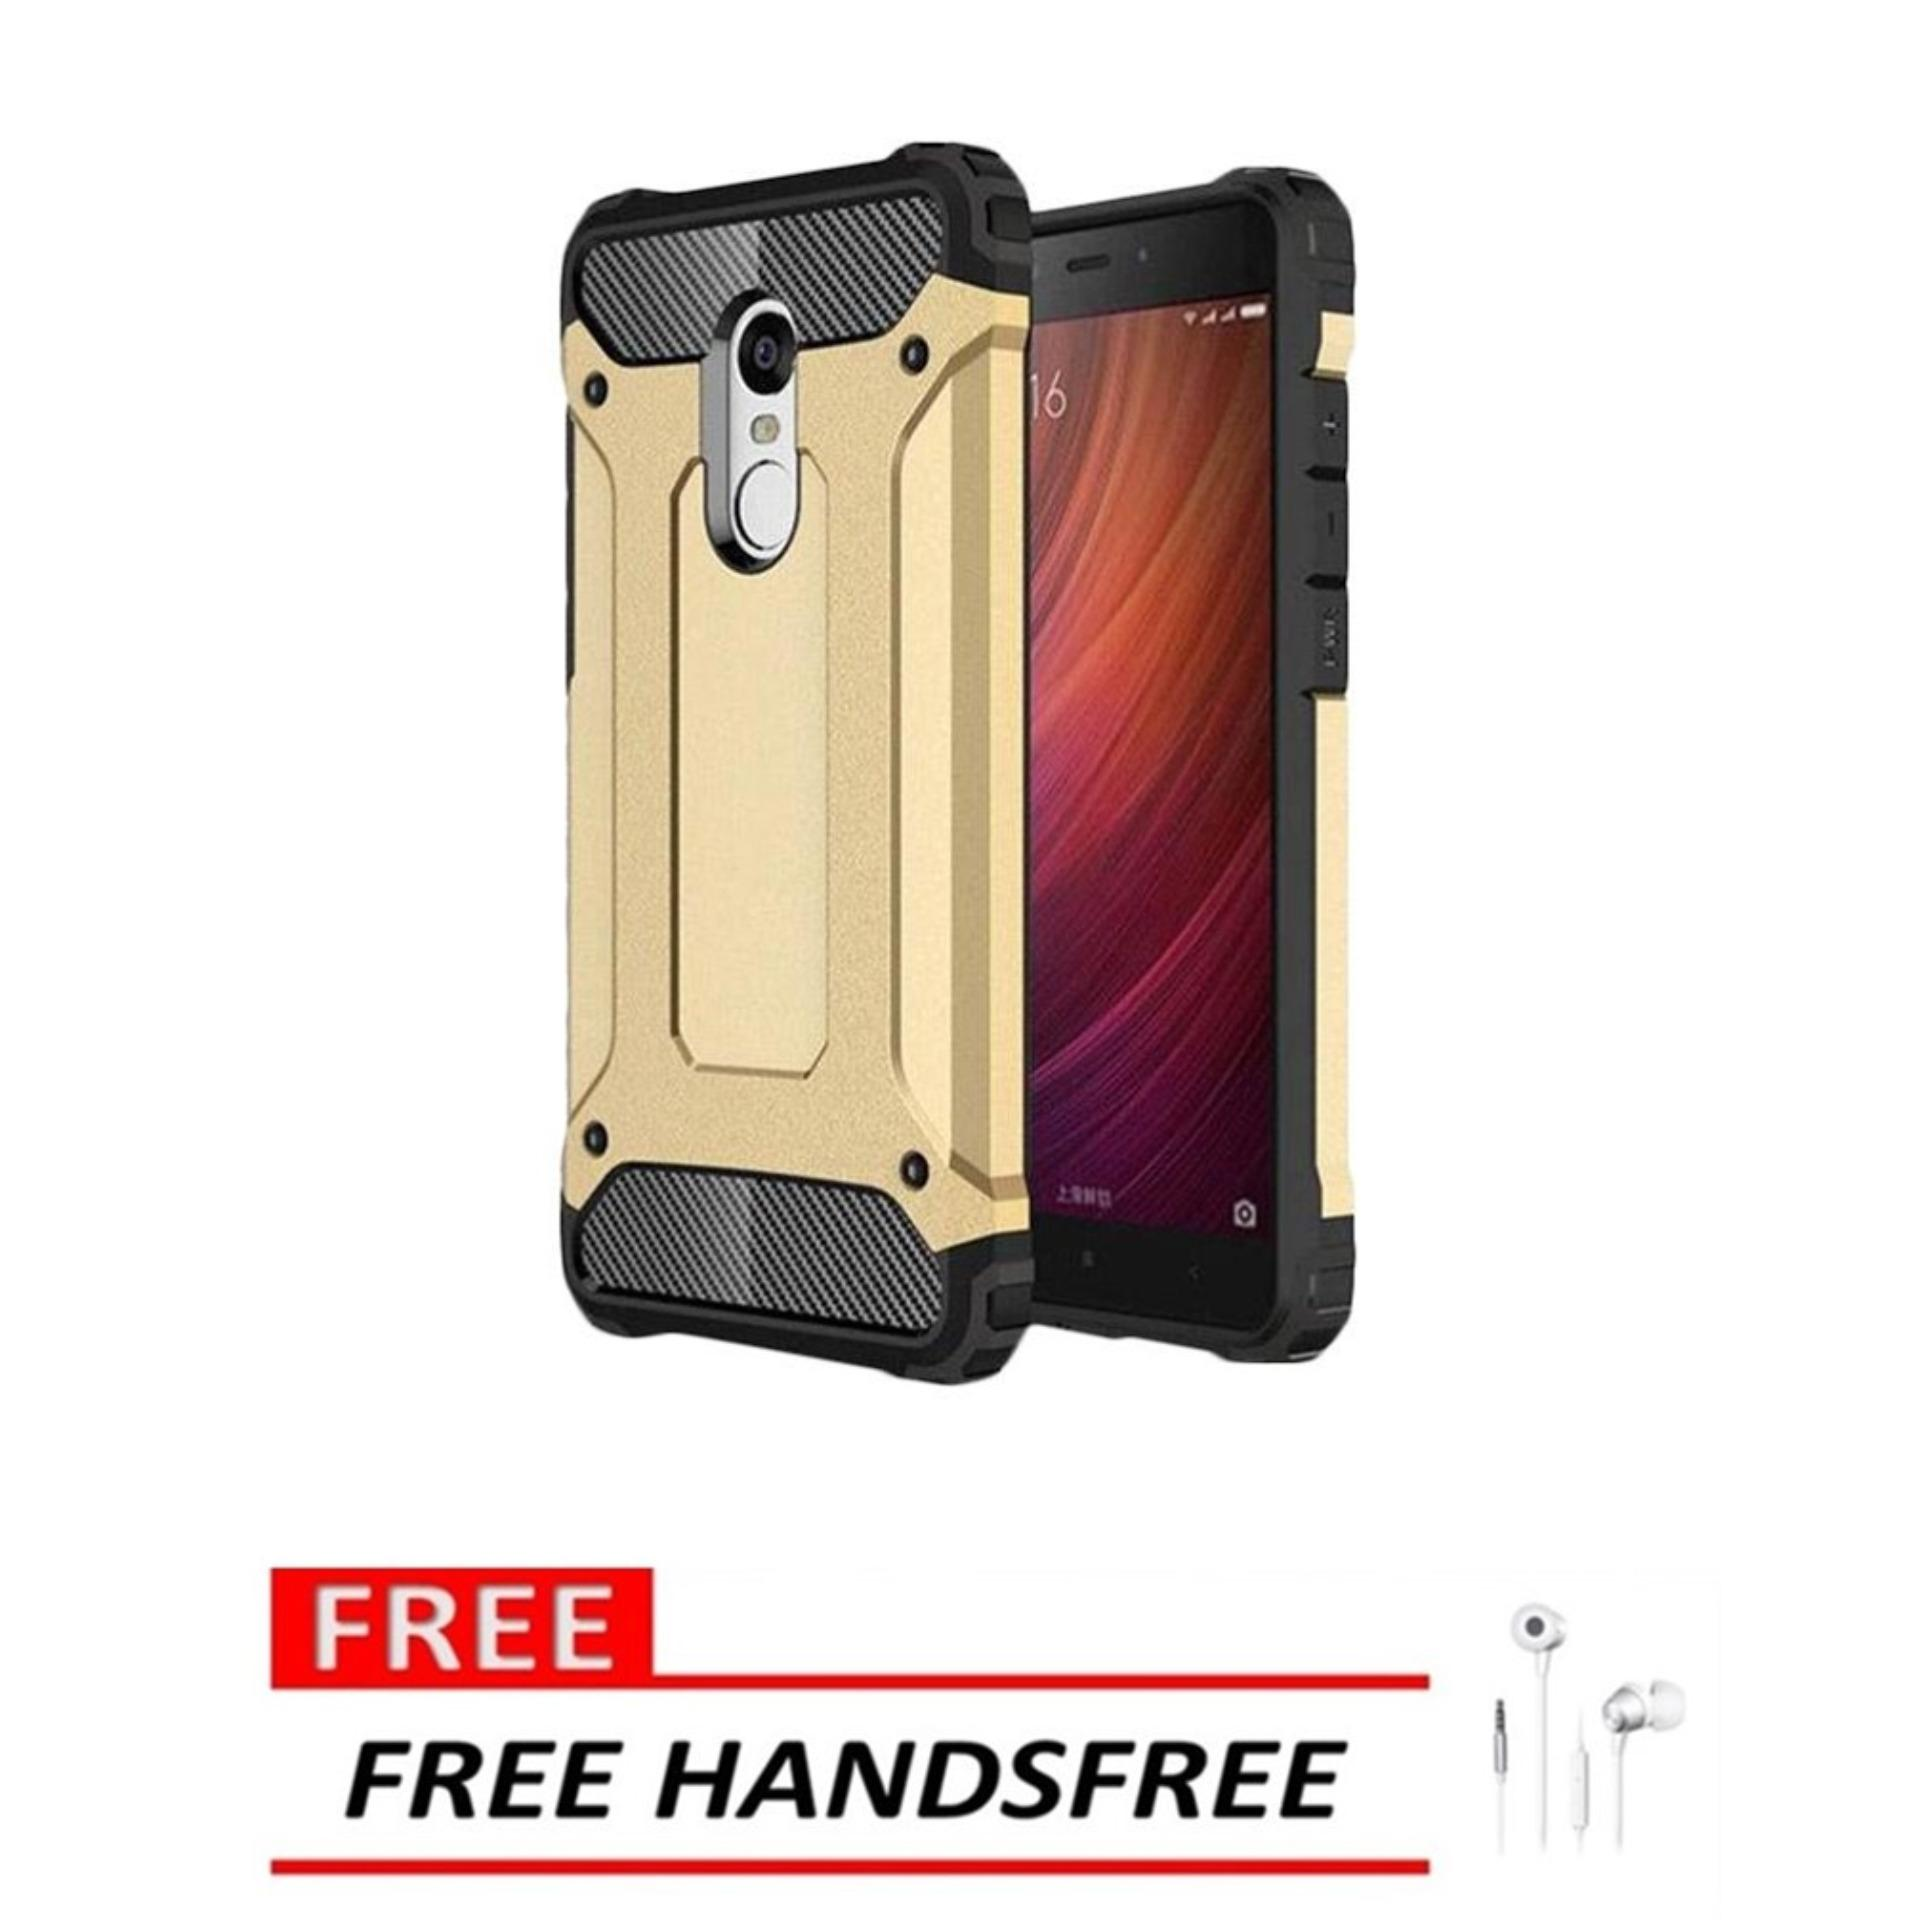 Case Hard Cover Robot Shockproof Armor For Xiaomi Redmi Note 4X – Gold FREE Handsfree